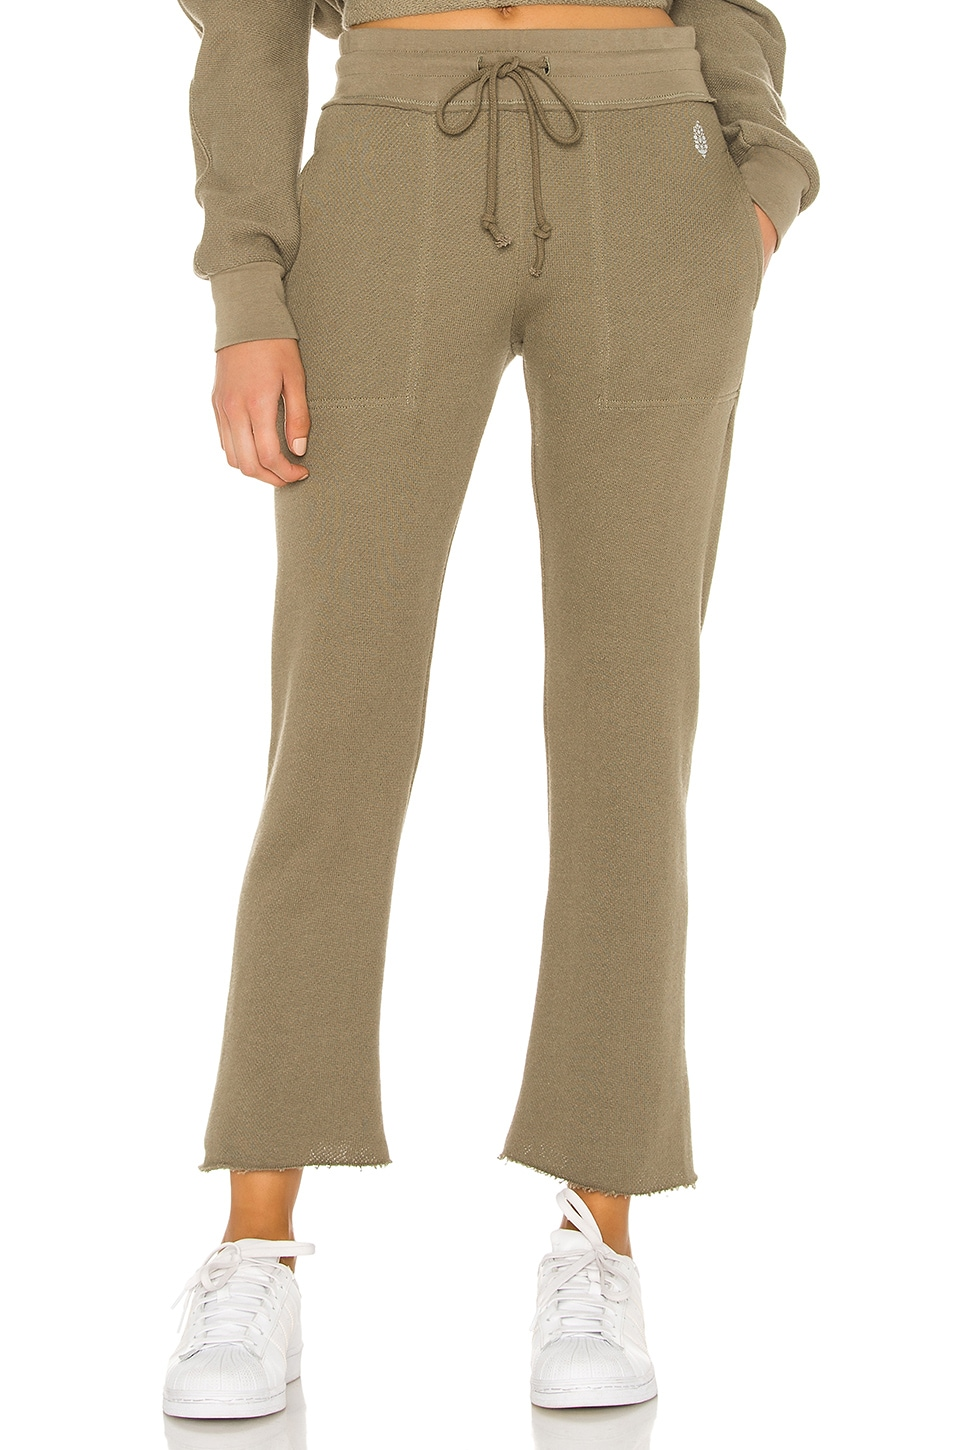 Free People X FP Movement Reyes Sweat Pant in Army